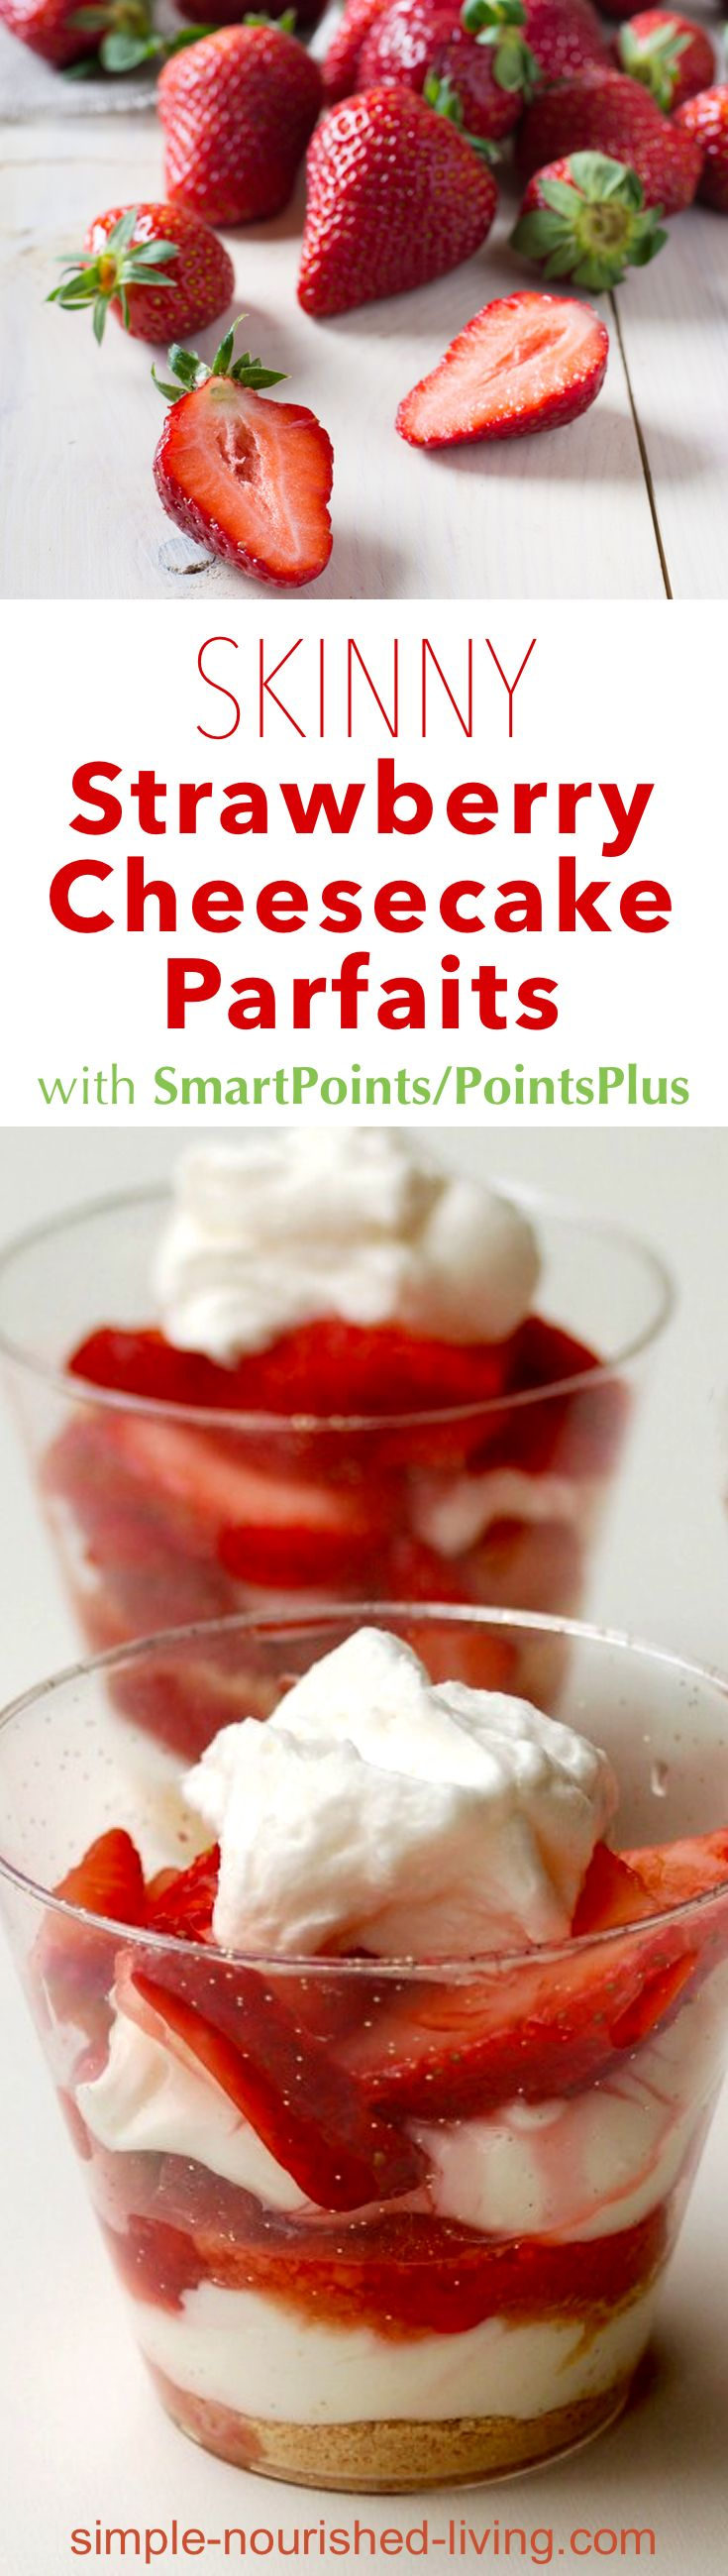 Weight Watchers friendly, light and delicious no-bake strawberry cheesecake parfaits - just 188 calories, 5 PointsPlus, 7 SmartPoints!